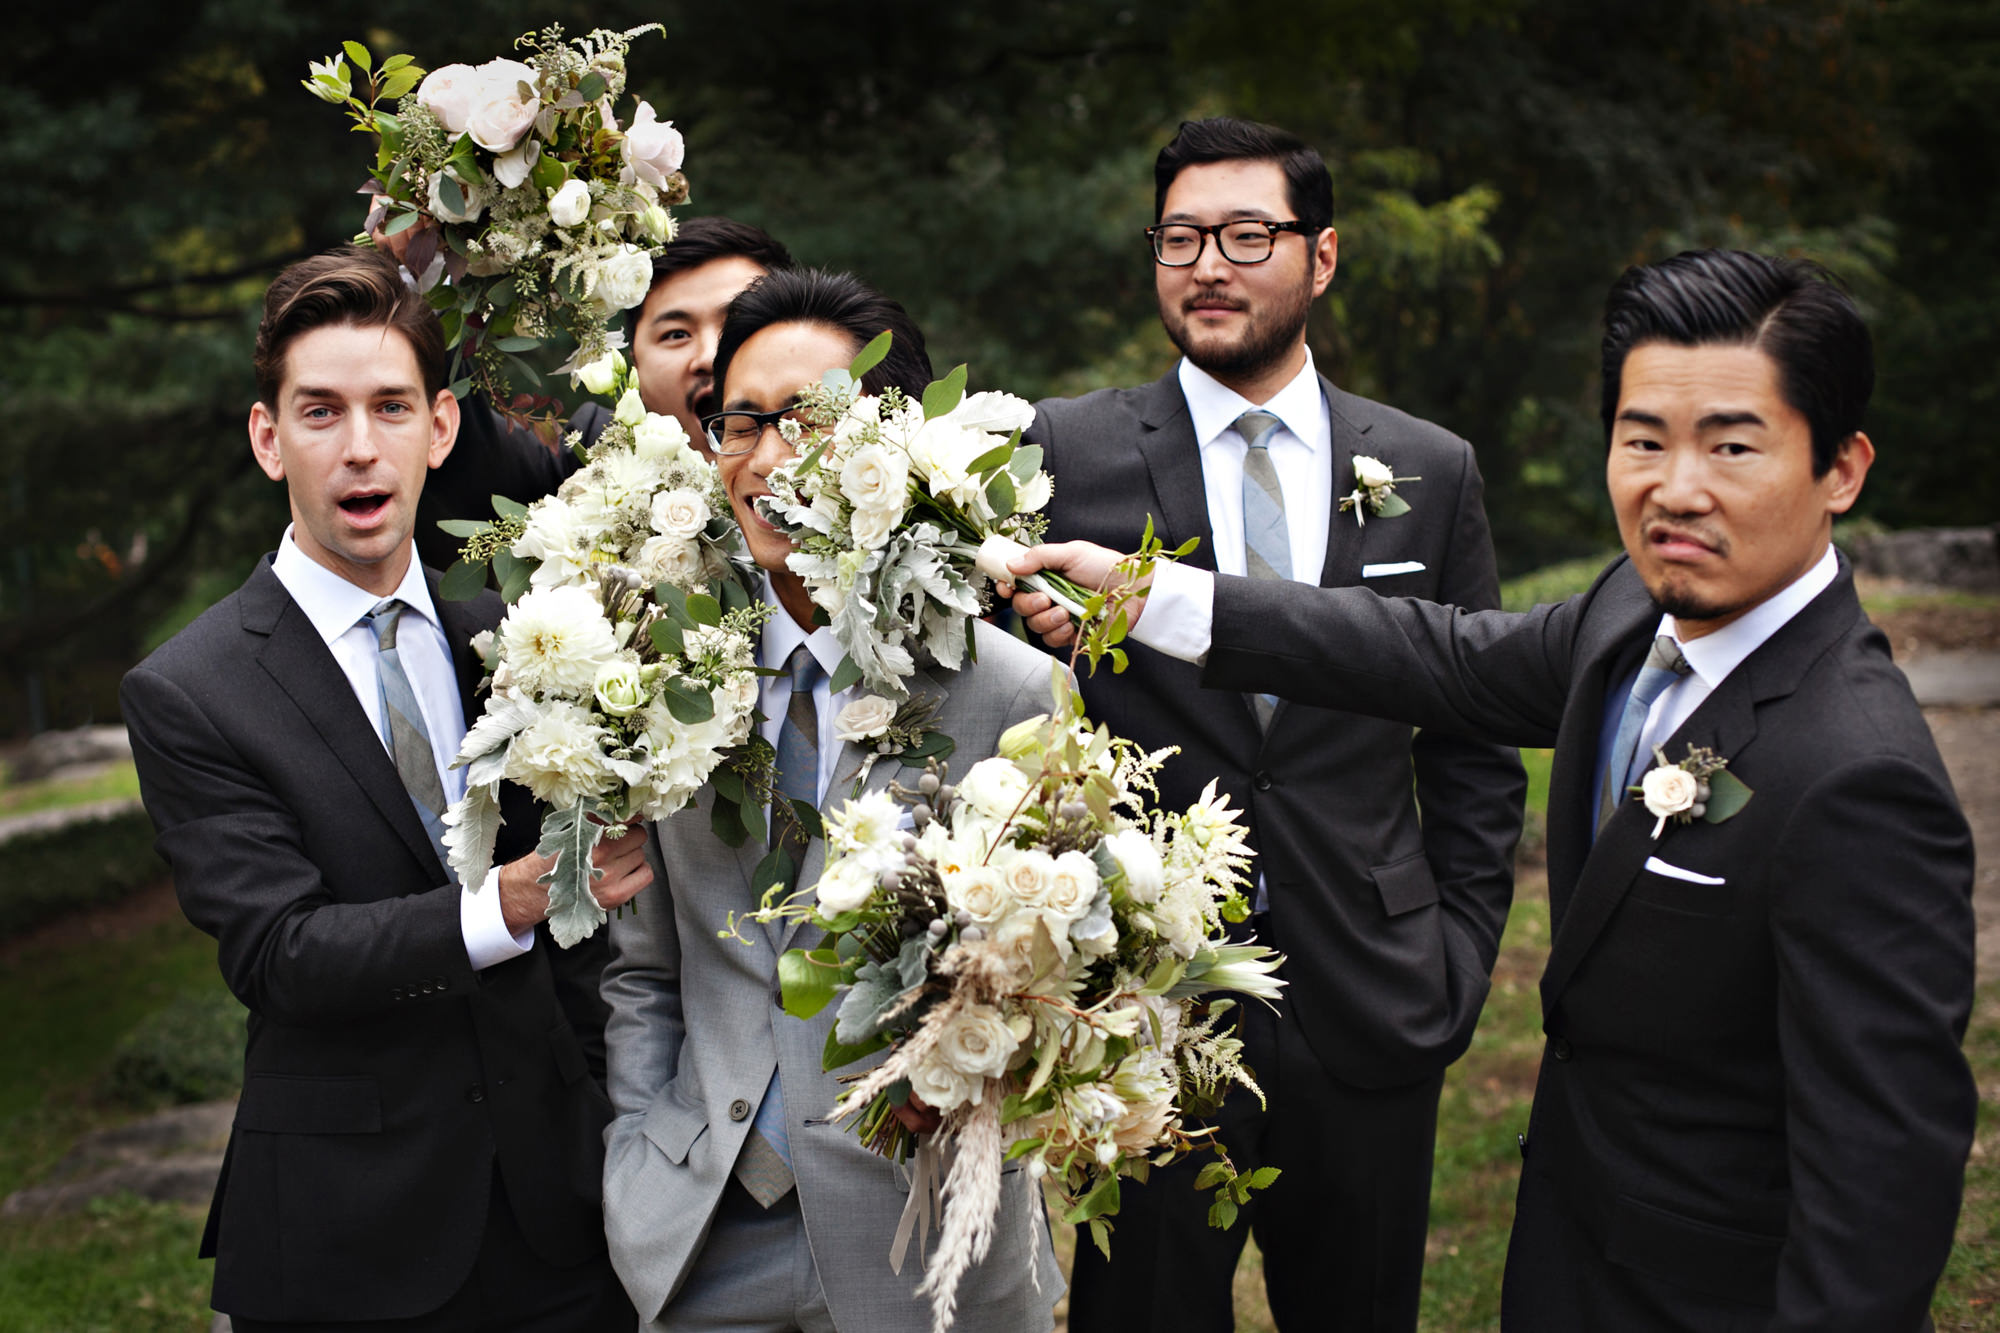 Groomsman pushes white rose bouquet into grooms face - PhotoJJ